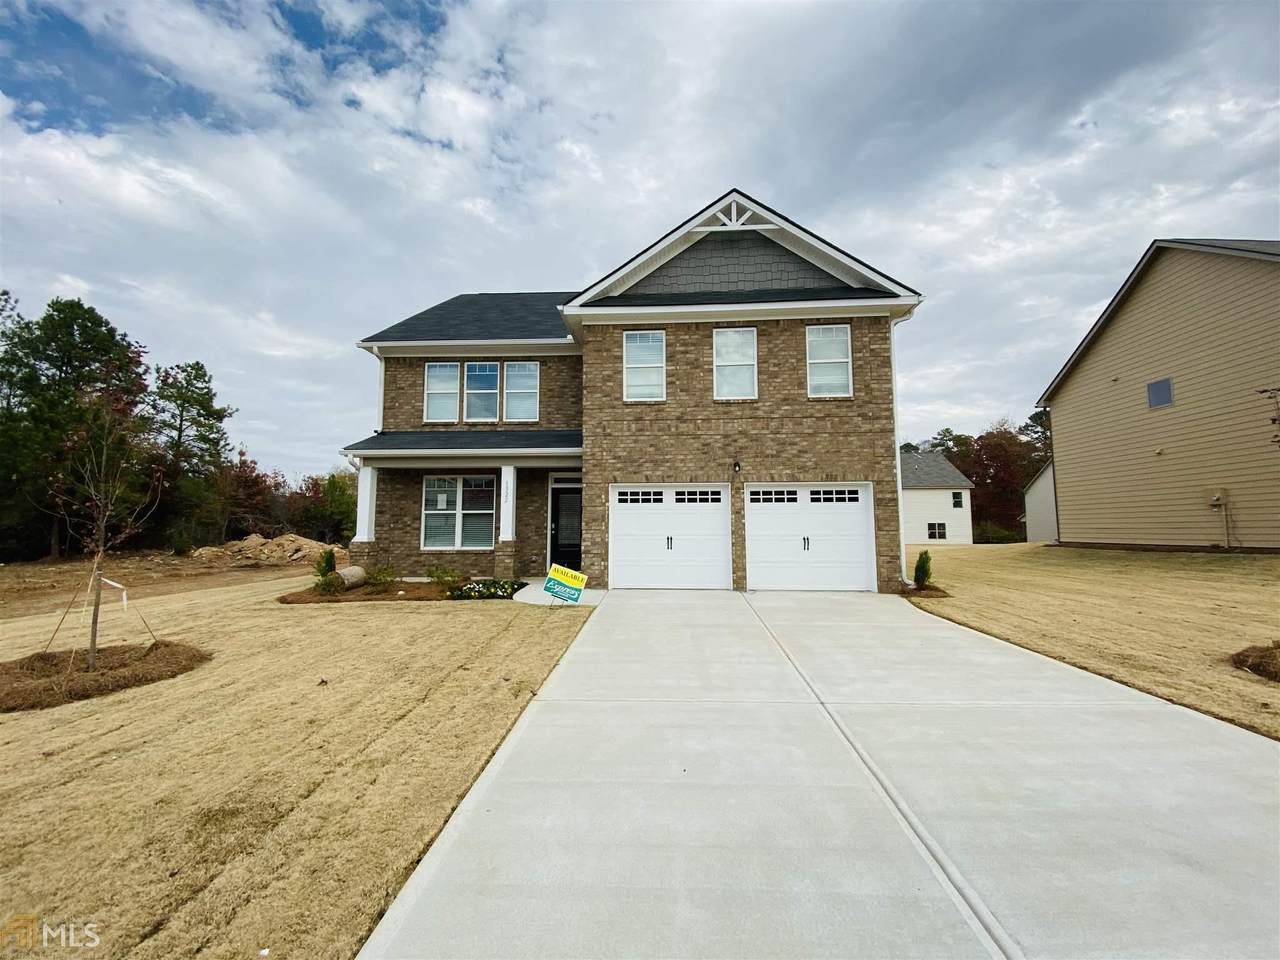 1218 Brookstone Cir - Photo 1